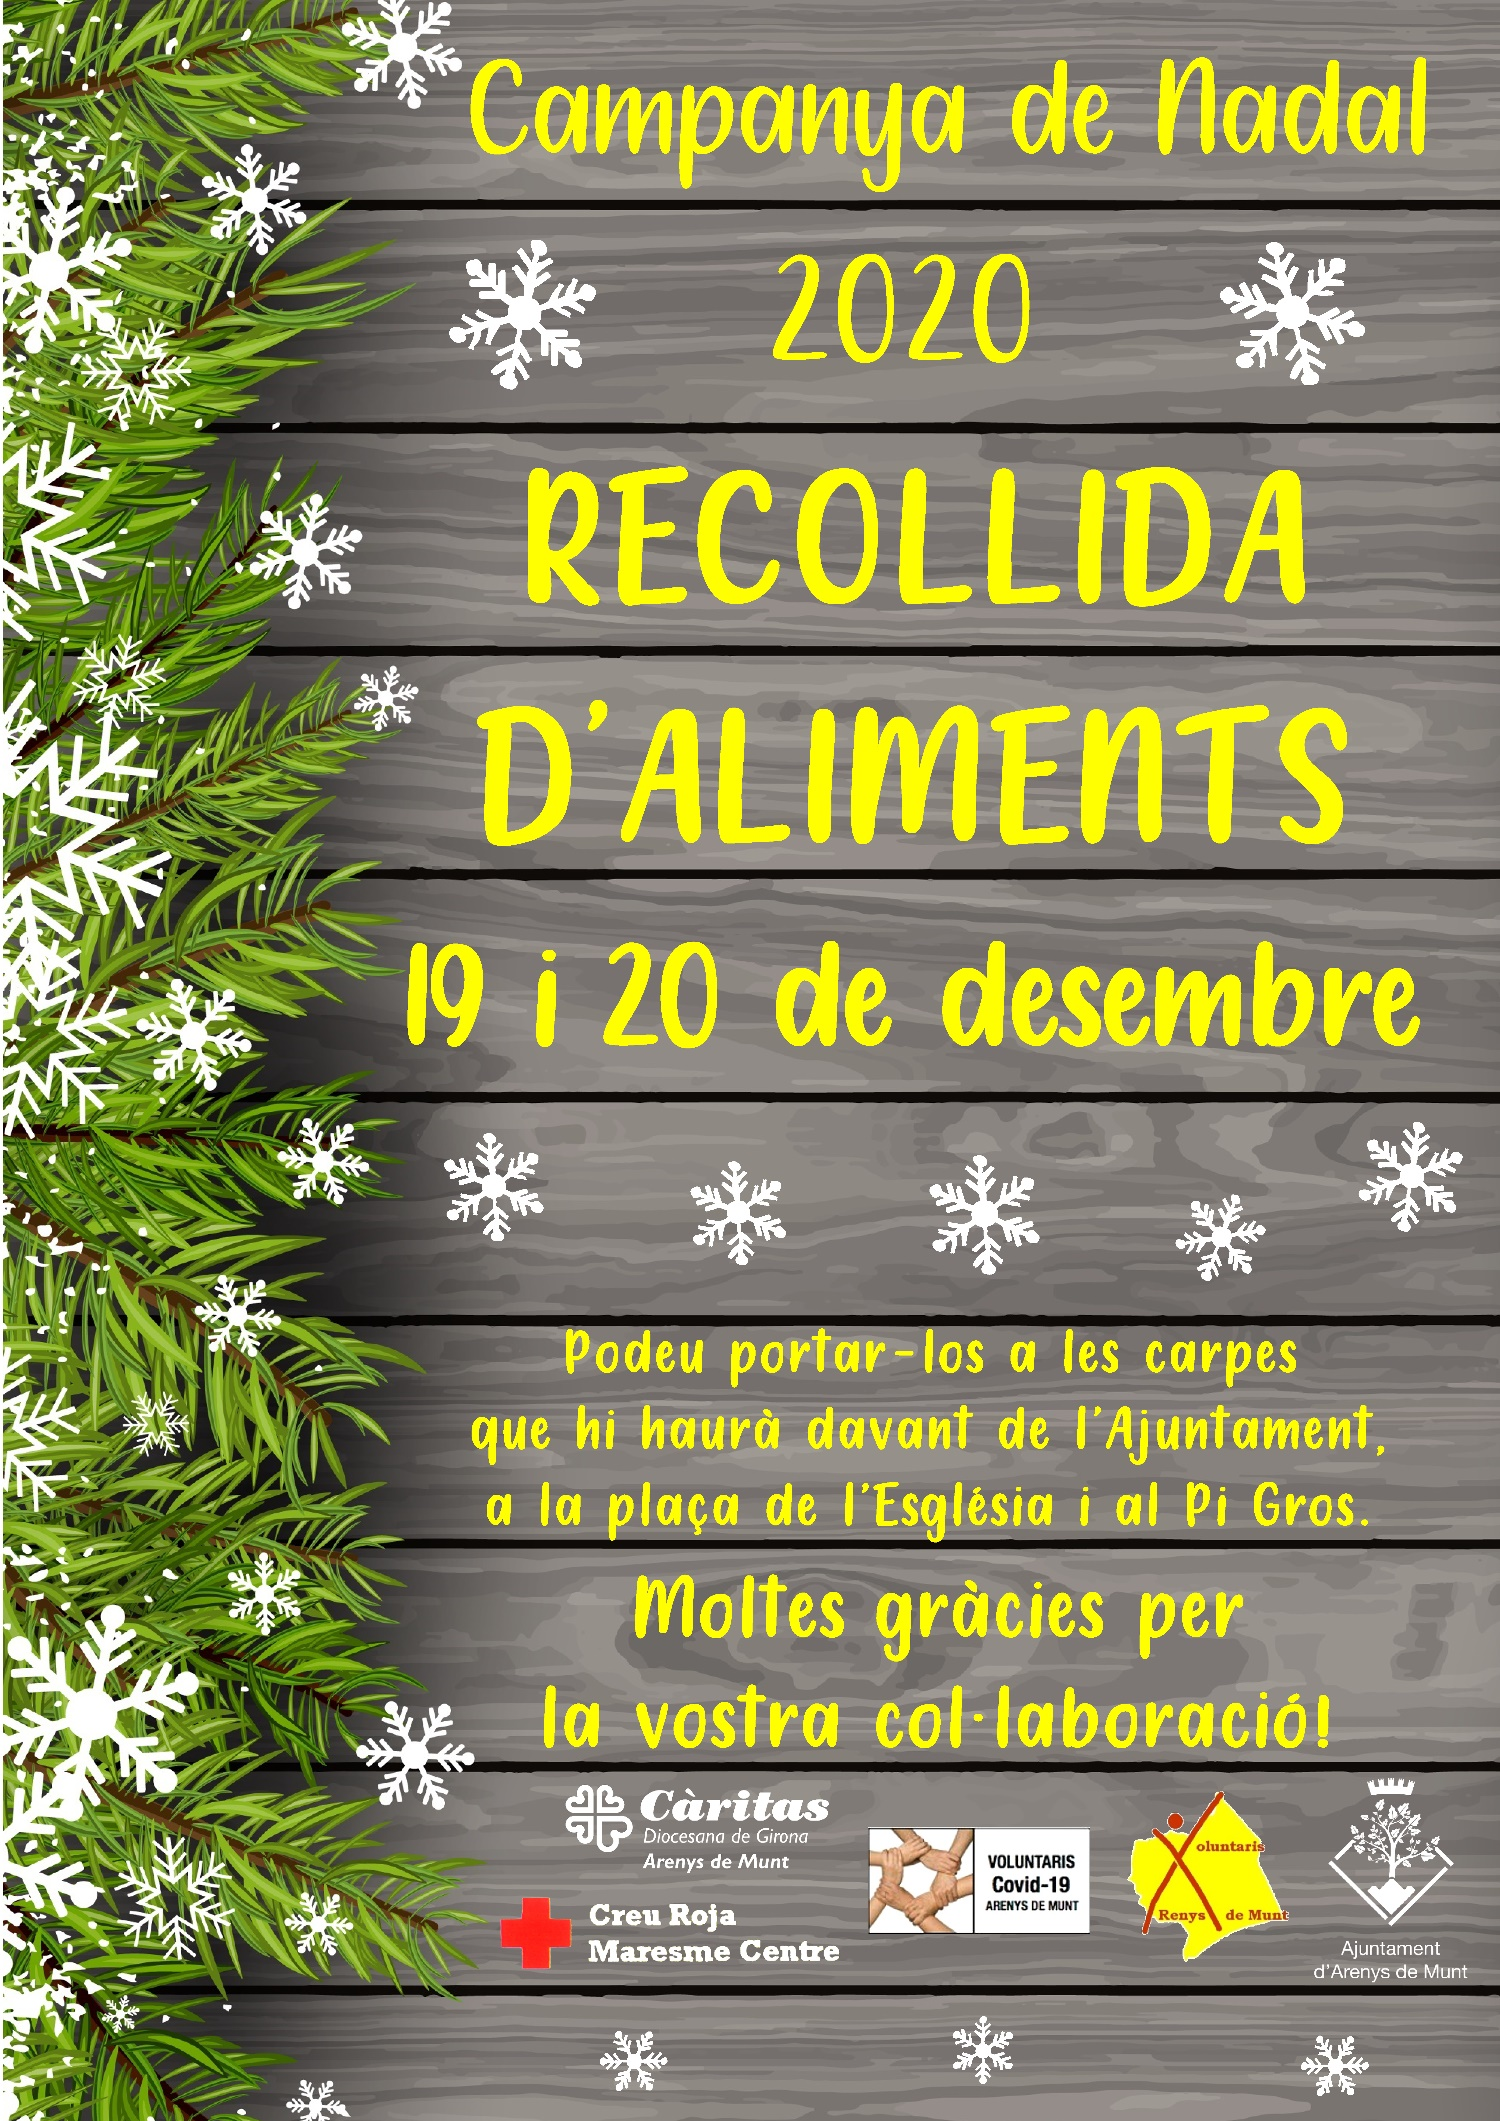 Cartell Recollida d'aliments Nadal 2020